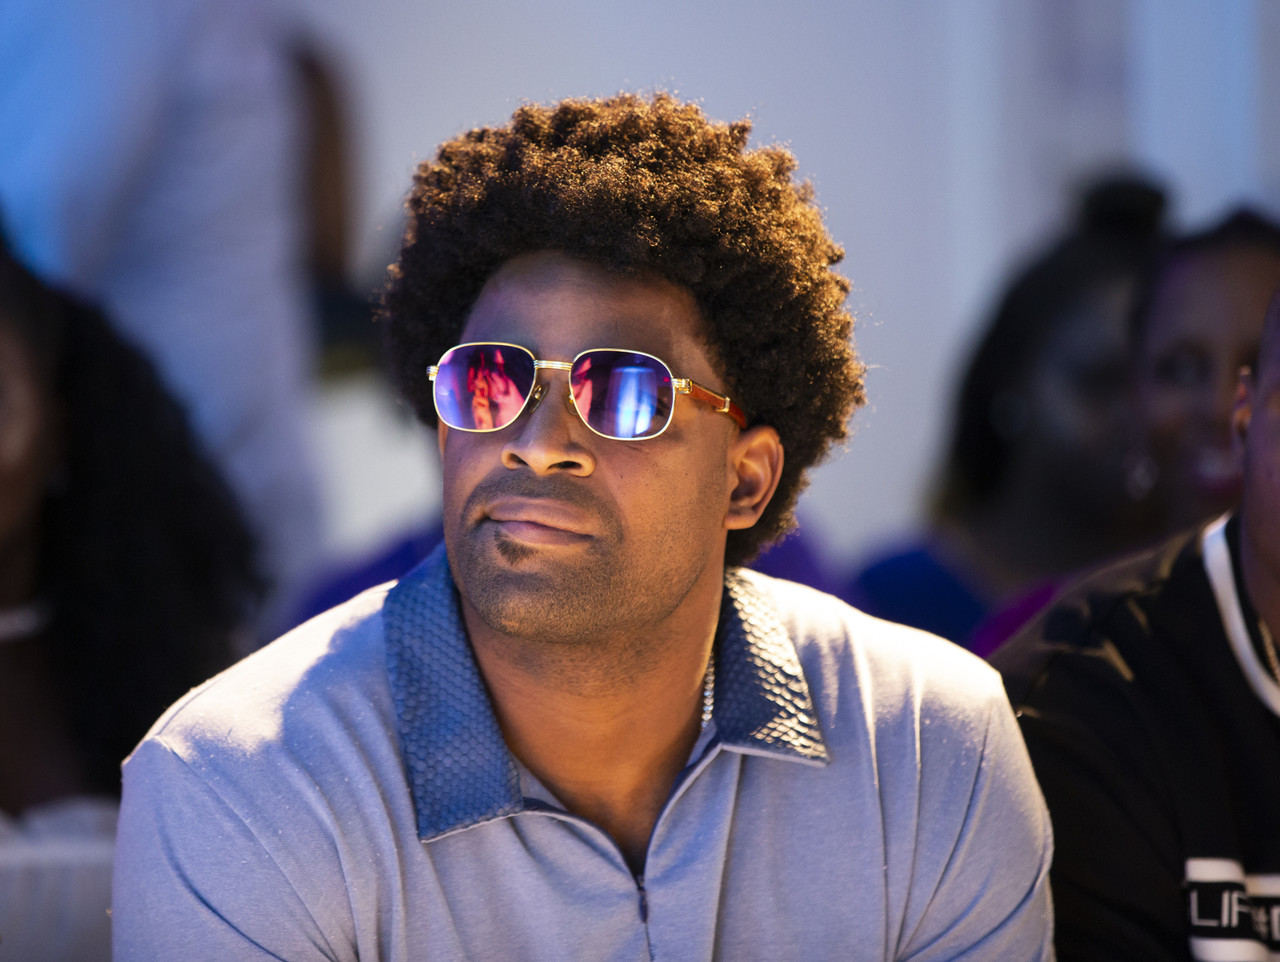 Host and Baltimore Ravens wide receiver Michael Crabtree looks on during the Fashion Blink show on Saturday, June 9, 2018 in Dallas.